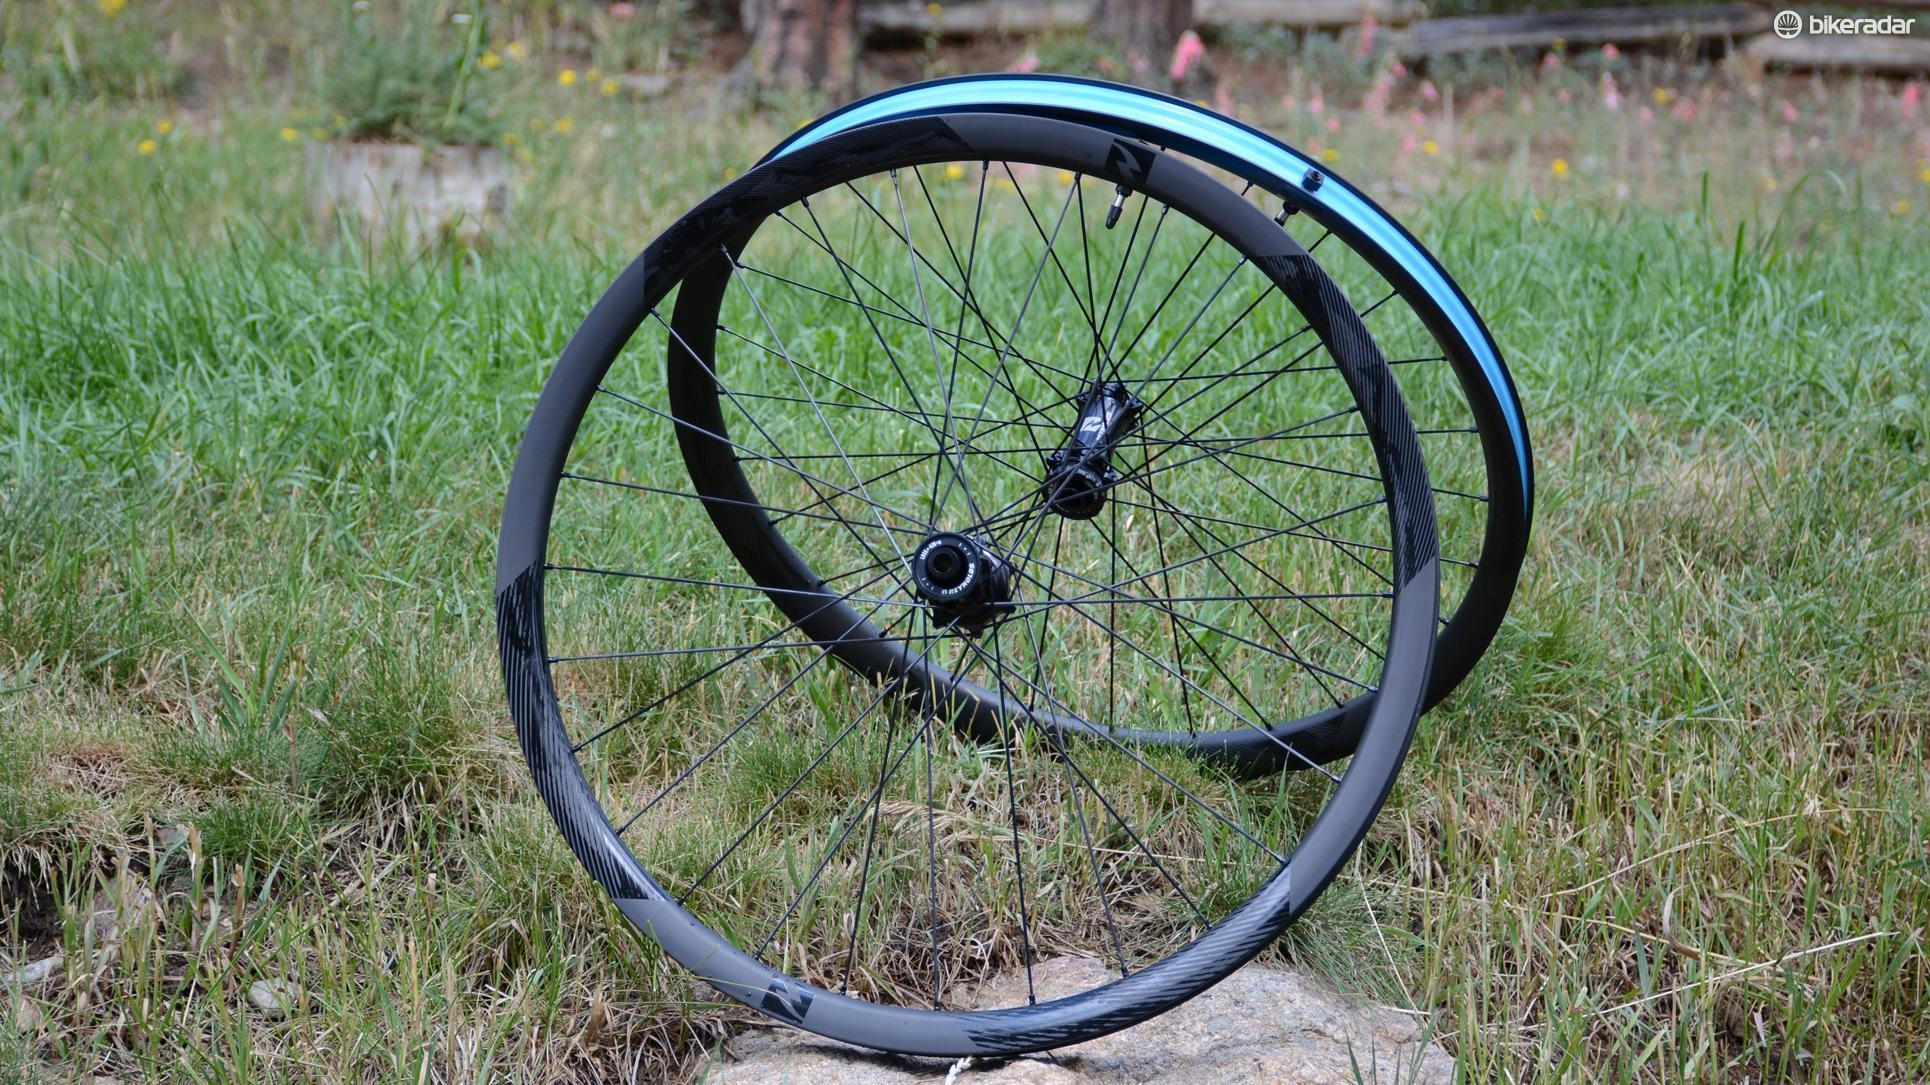 Reynolds' Blacklabel Enduro 27.5 wheels have 28mm wide rims and Industry Nine Torch hubs